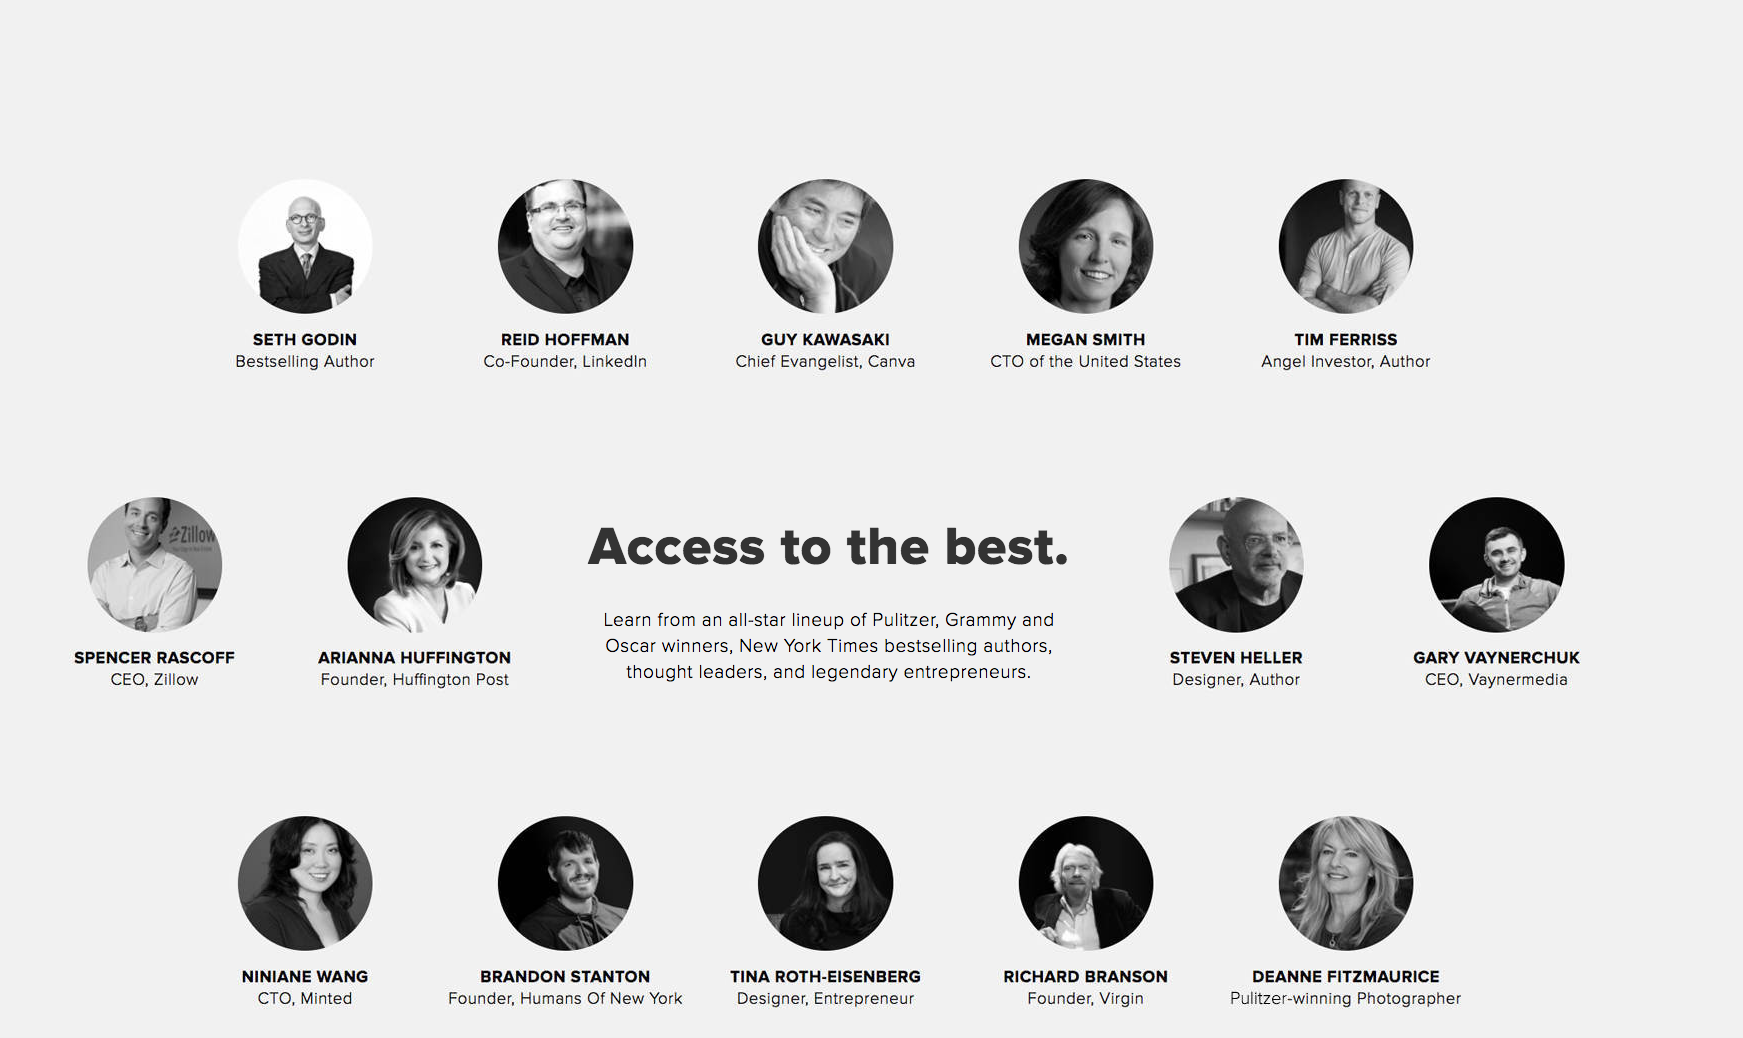 CreativeLive online courses by arianna huffington, gary vee, gary vaynerchuck and tim ferris